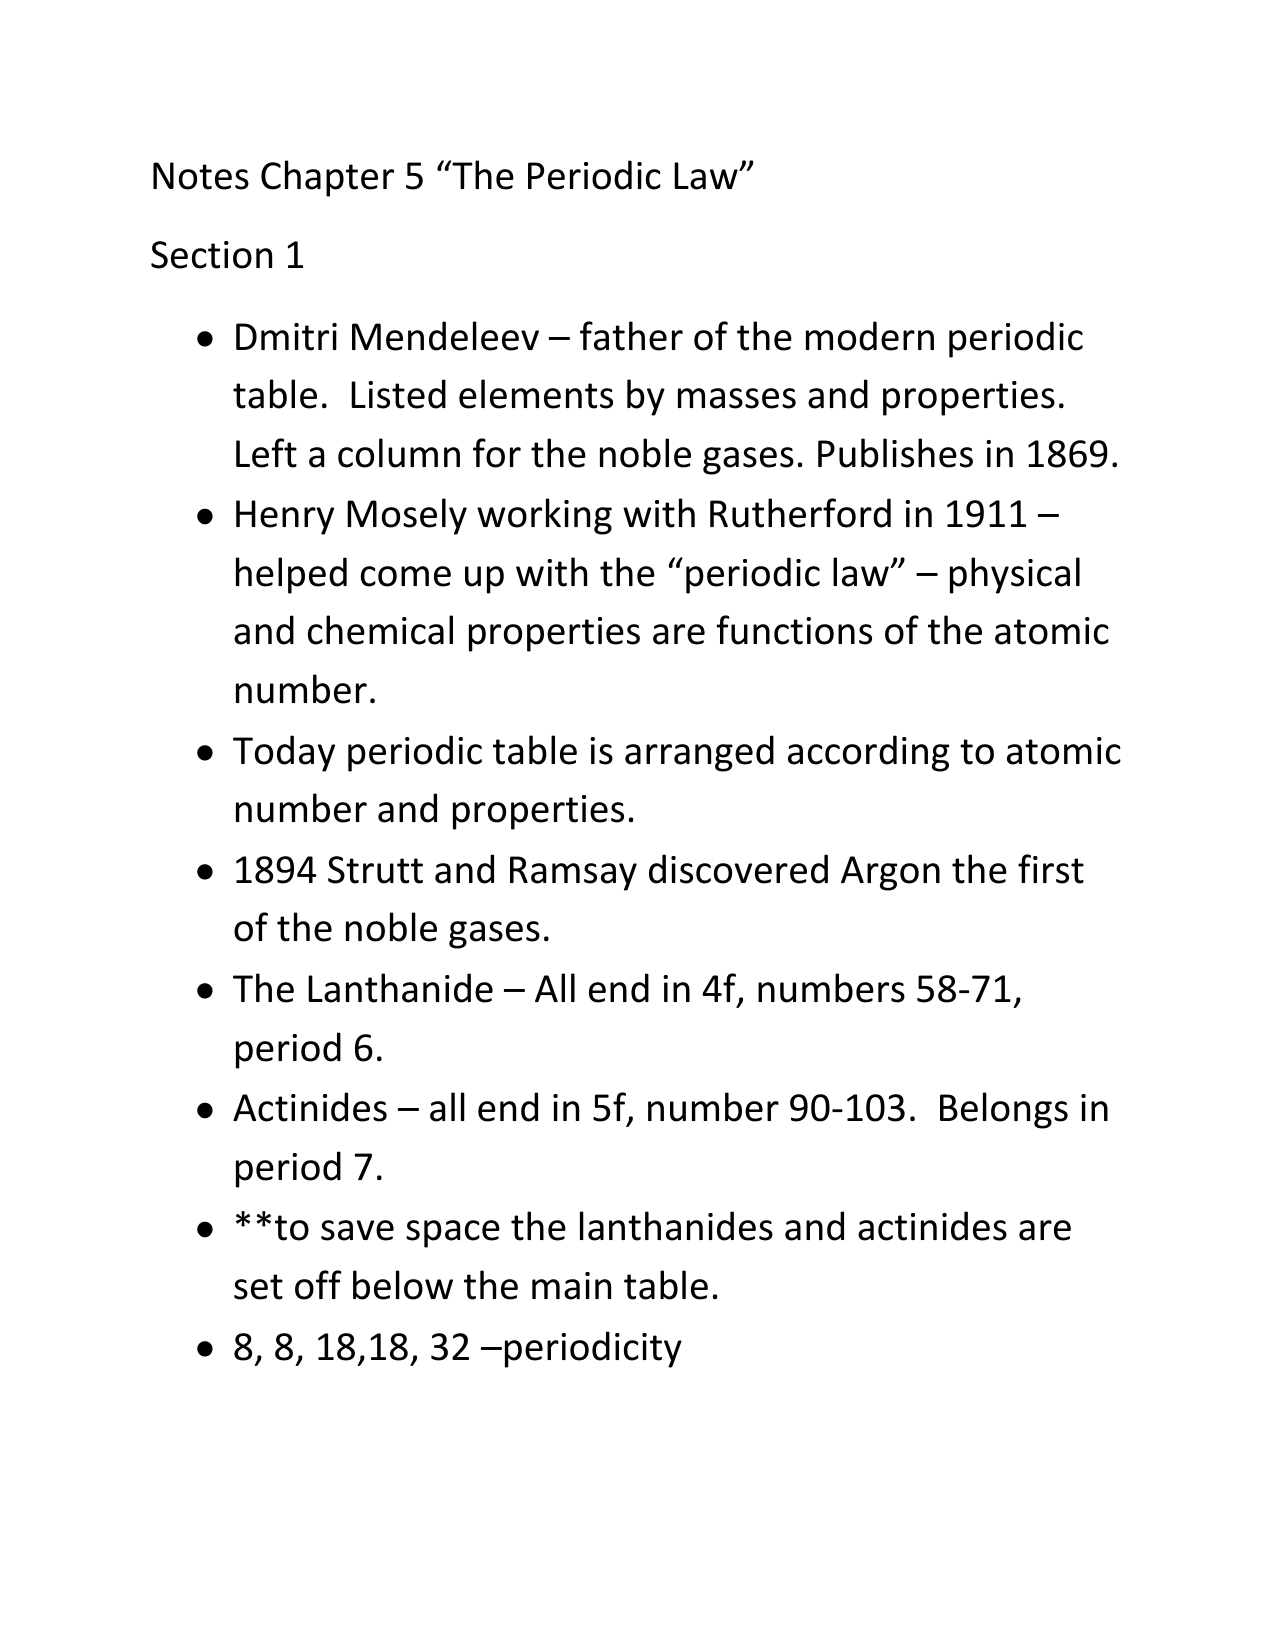 Dmitri mendeleev discovery of the periodic table gallery dmitri mendeleev discovery of the periodic table images periodic dmitri mendeleev discovery of the periodic table gamestrikefo Choice Image